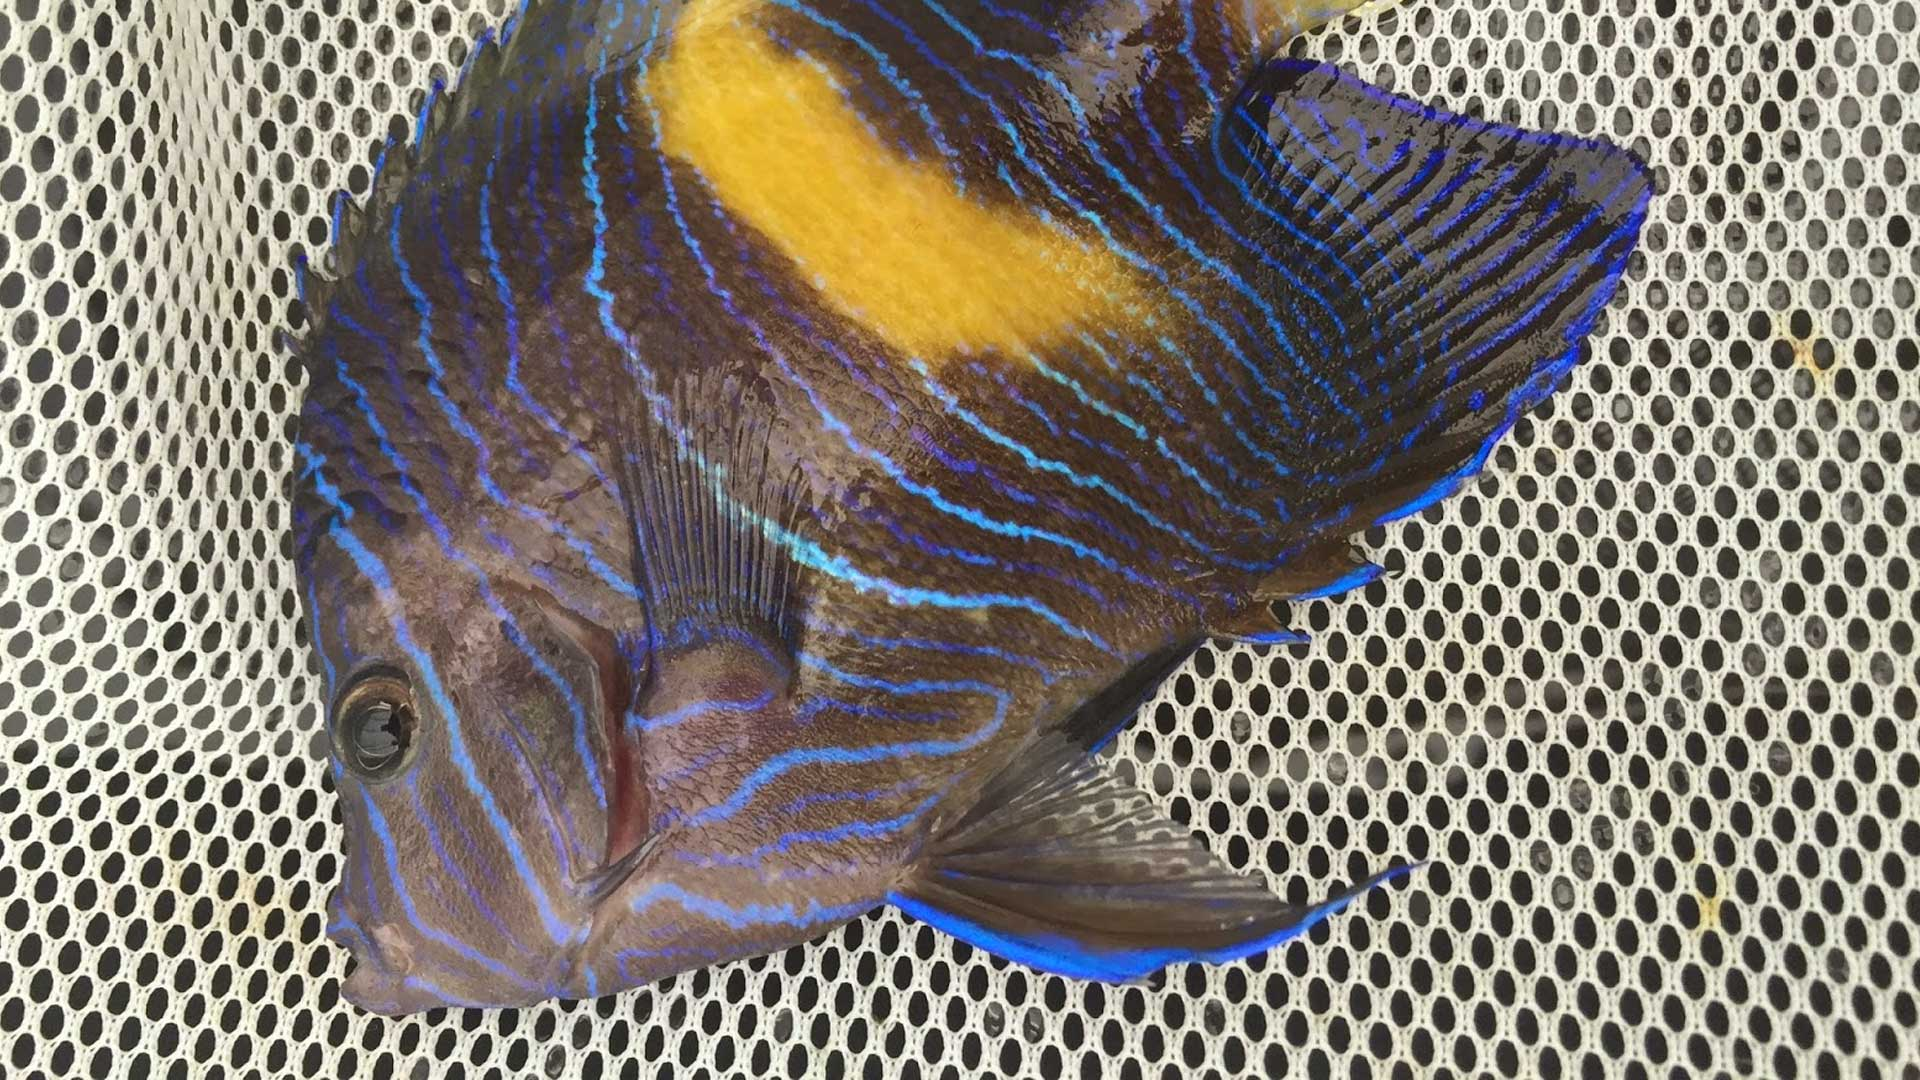 Figure 6.  Angelfish (~1.5 years old) kept at UF's Tropical Aquaculture Lab. Photo credit: Kevin Barden.